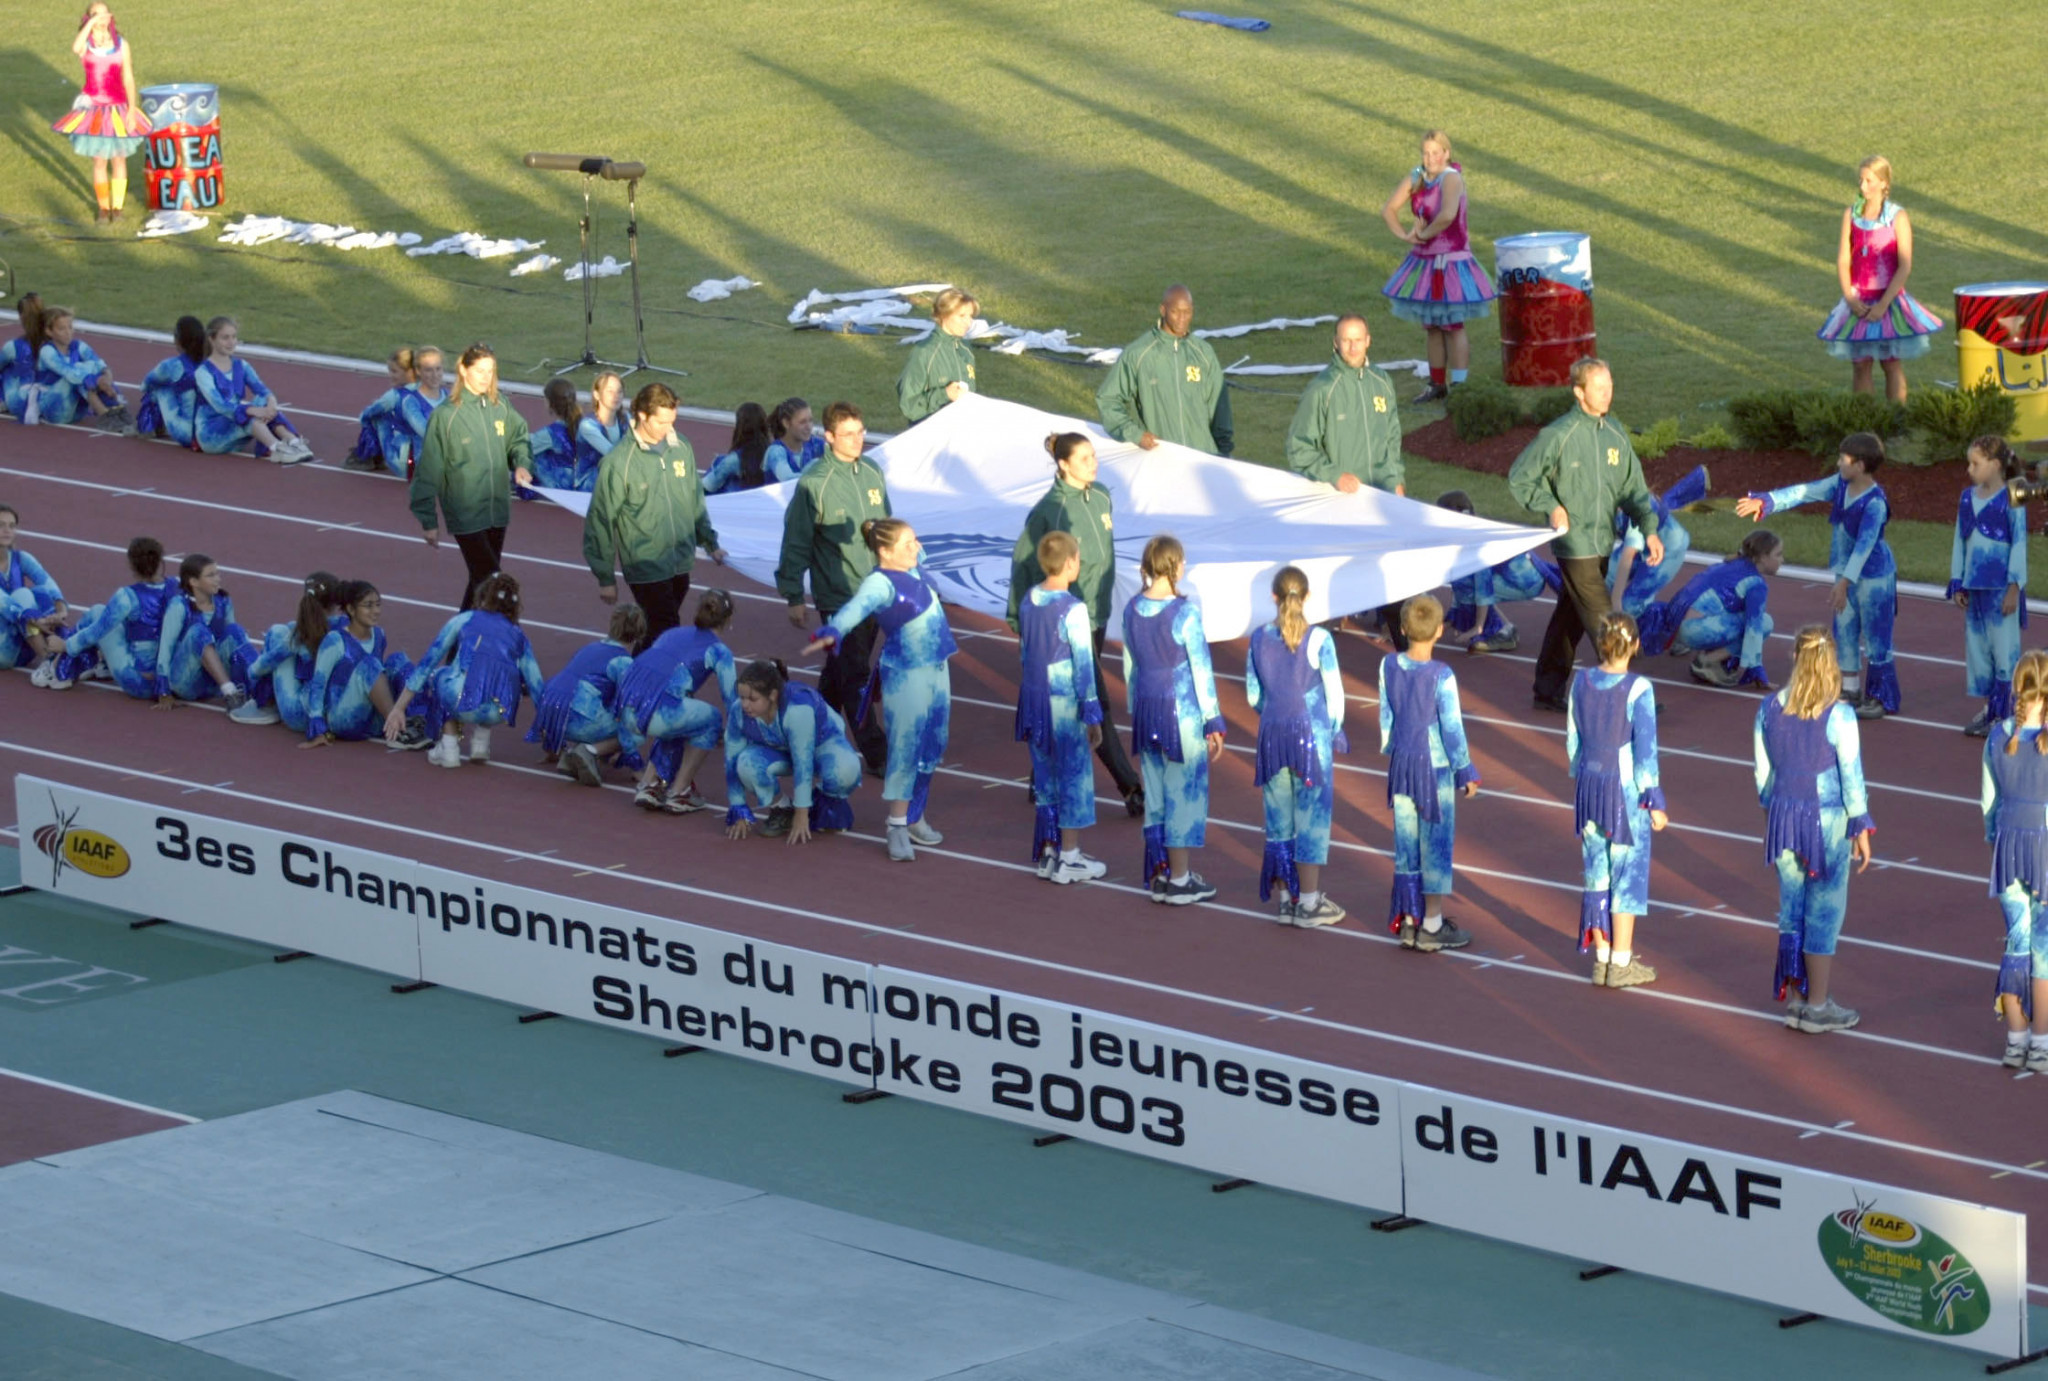 Sherbrooke staged the 2003 IAAF Youth World Championships ©Getty Images